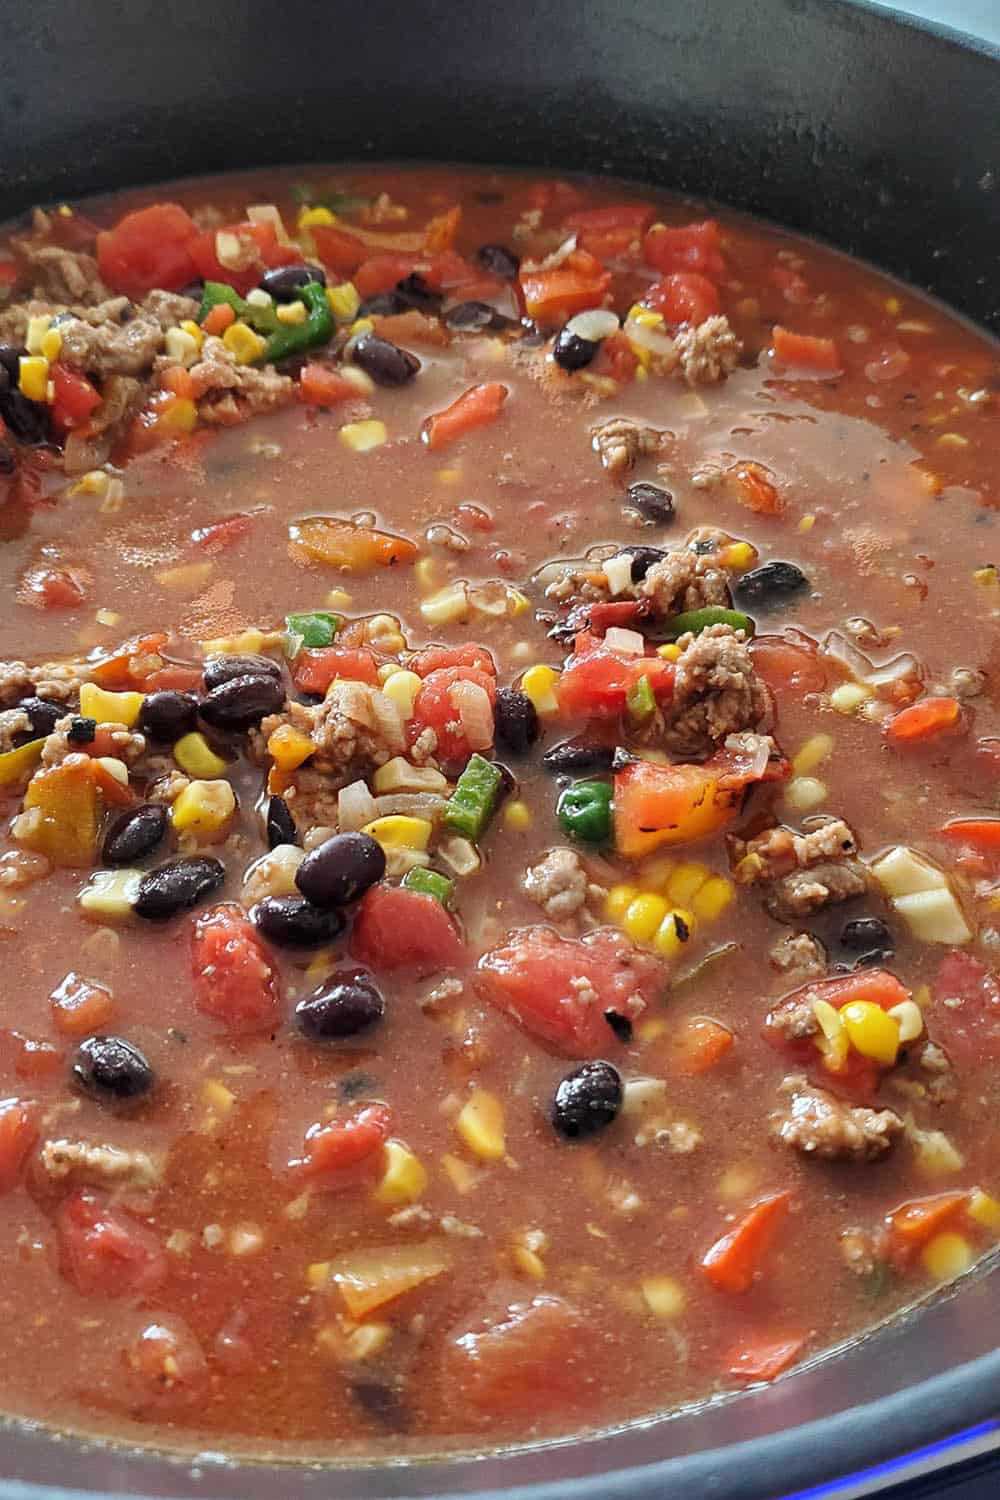 Simmering the taco soup in a pot